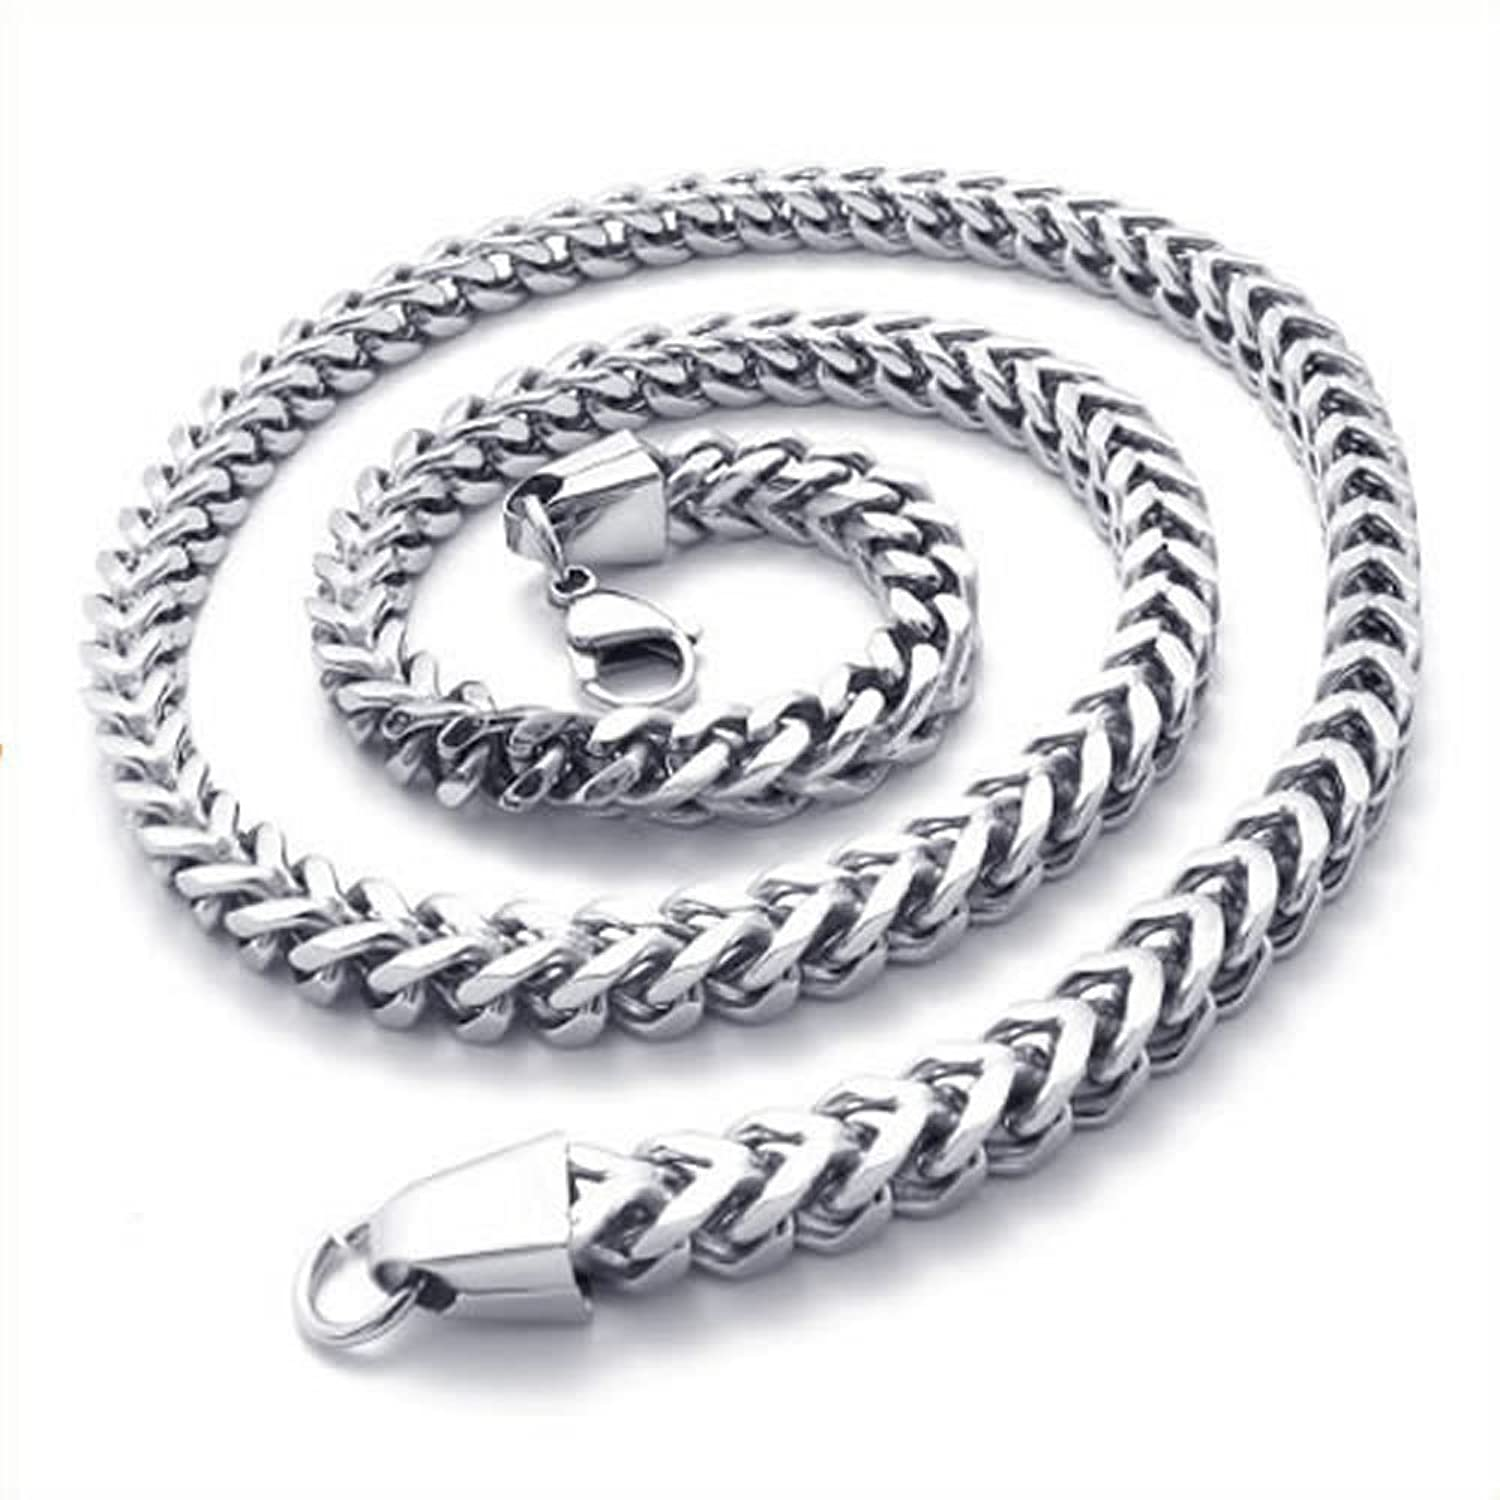 KONOV Stainless Steel Mens Necklace Link Chain - Silver - Length ...